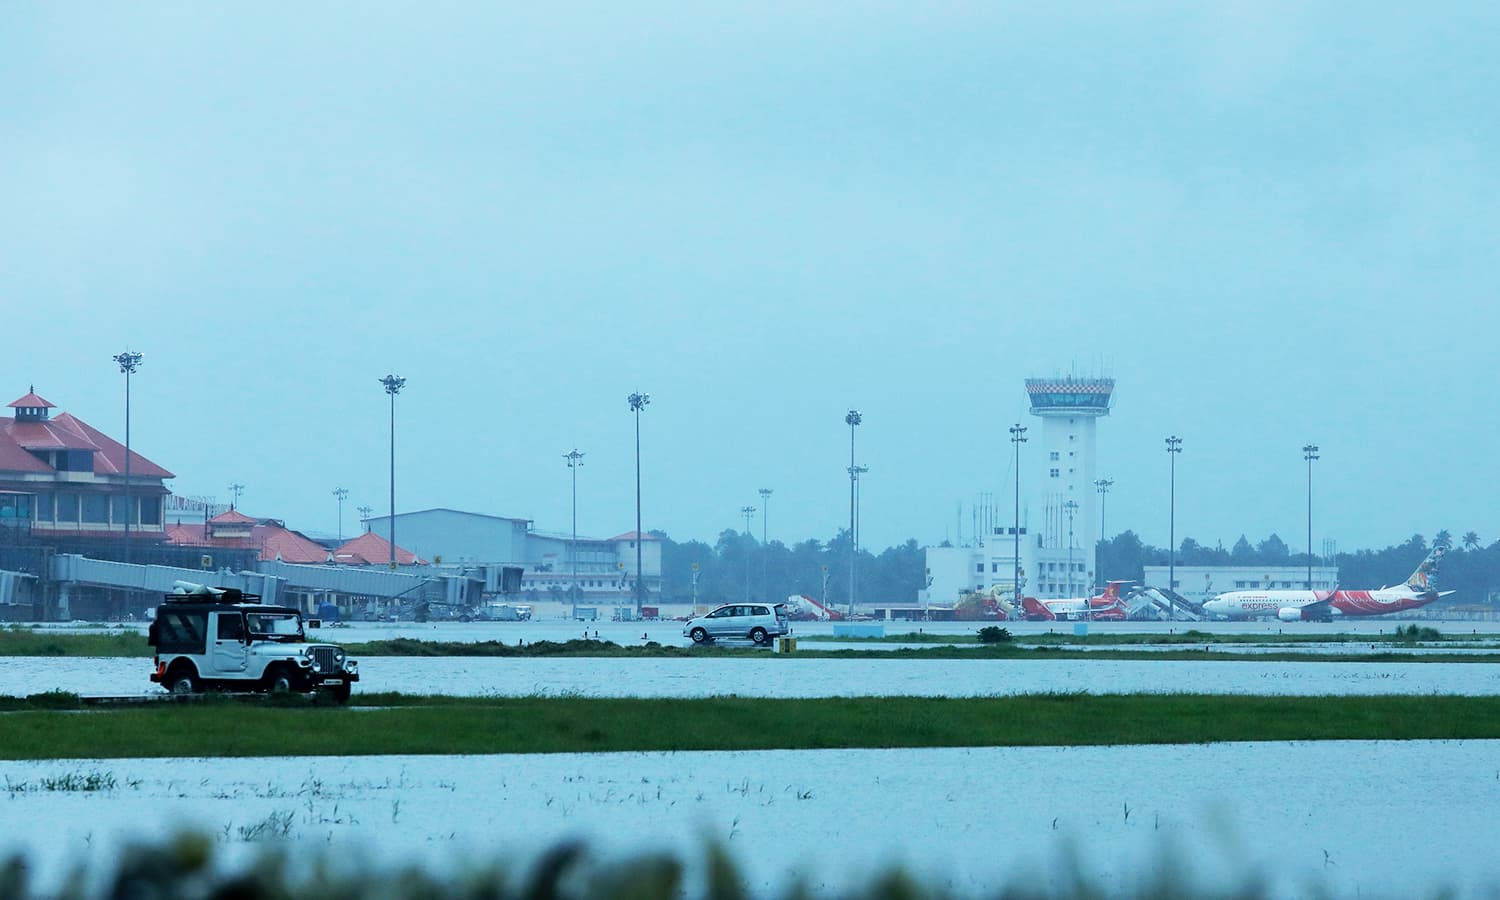 Kochi's International airport apron is seen flooded following monsoon rains in the Indian state of Kerala. —AFP